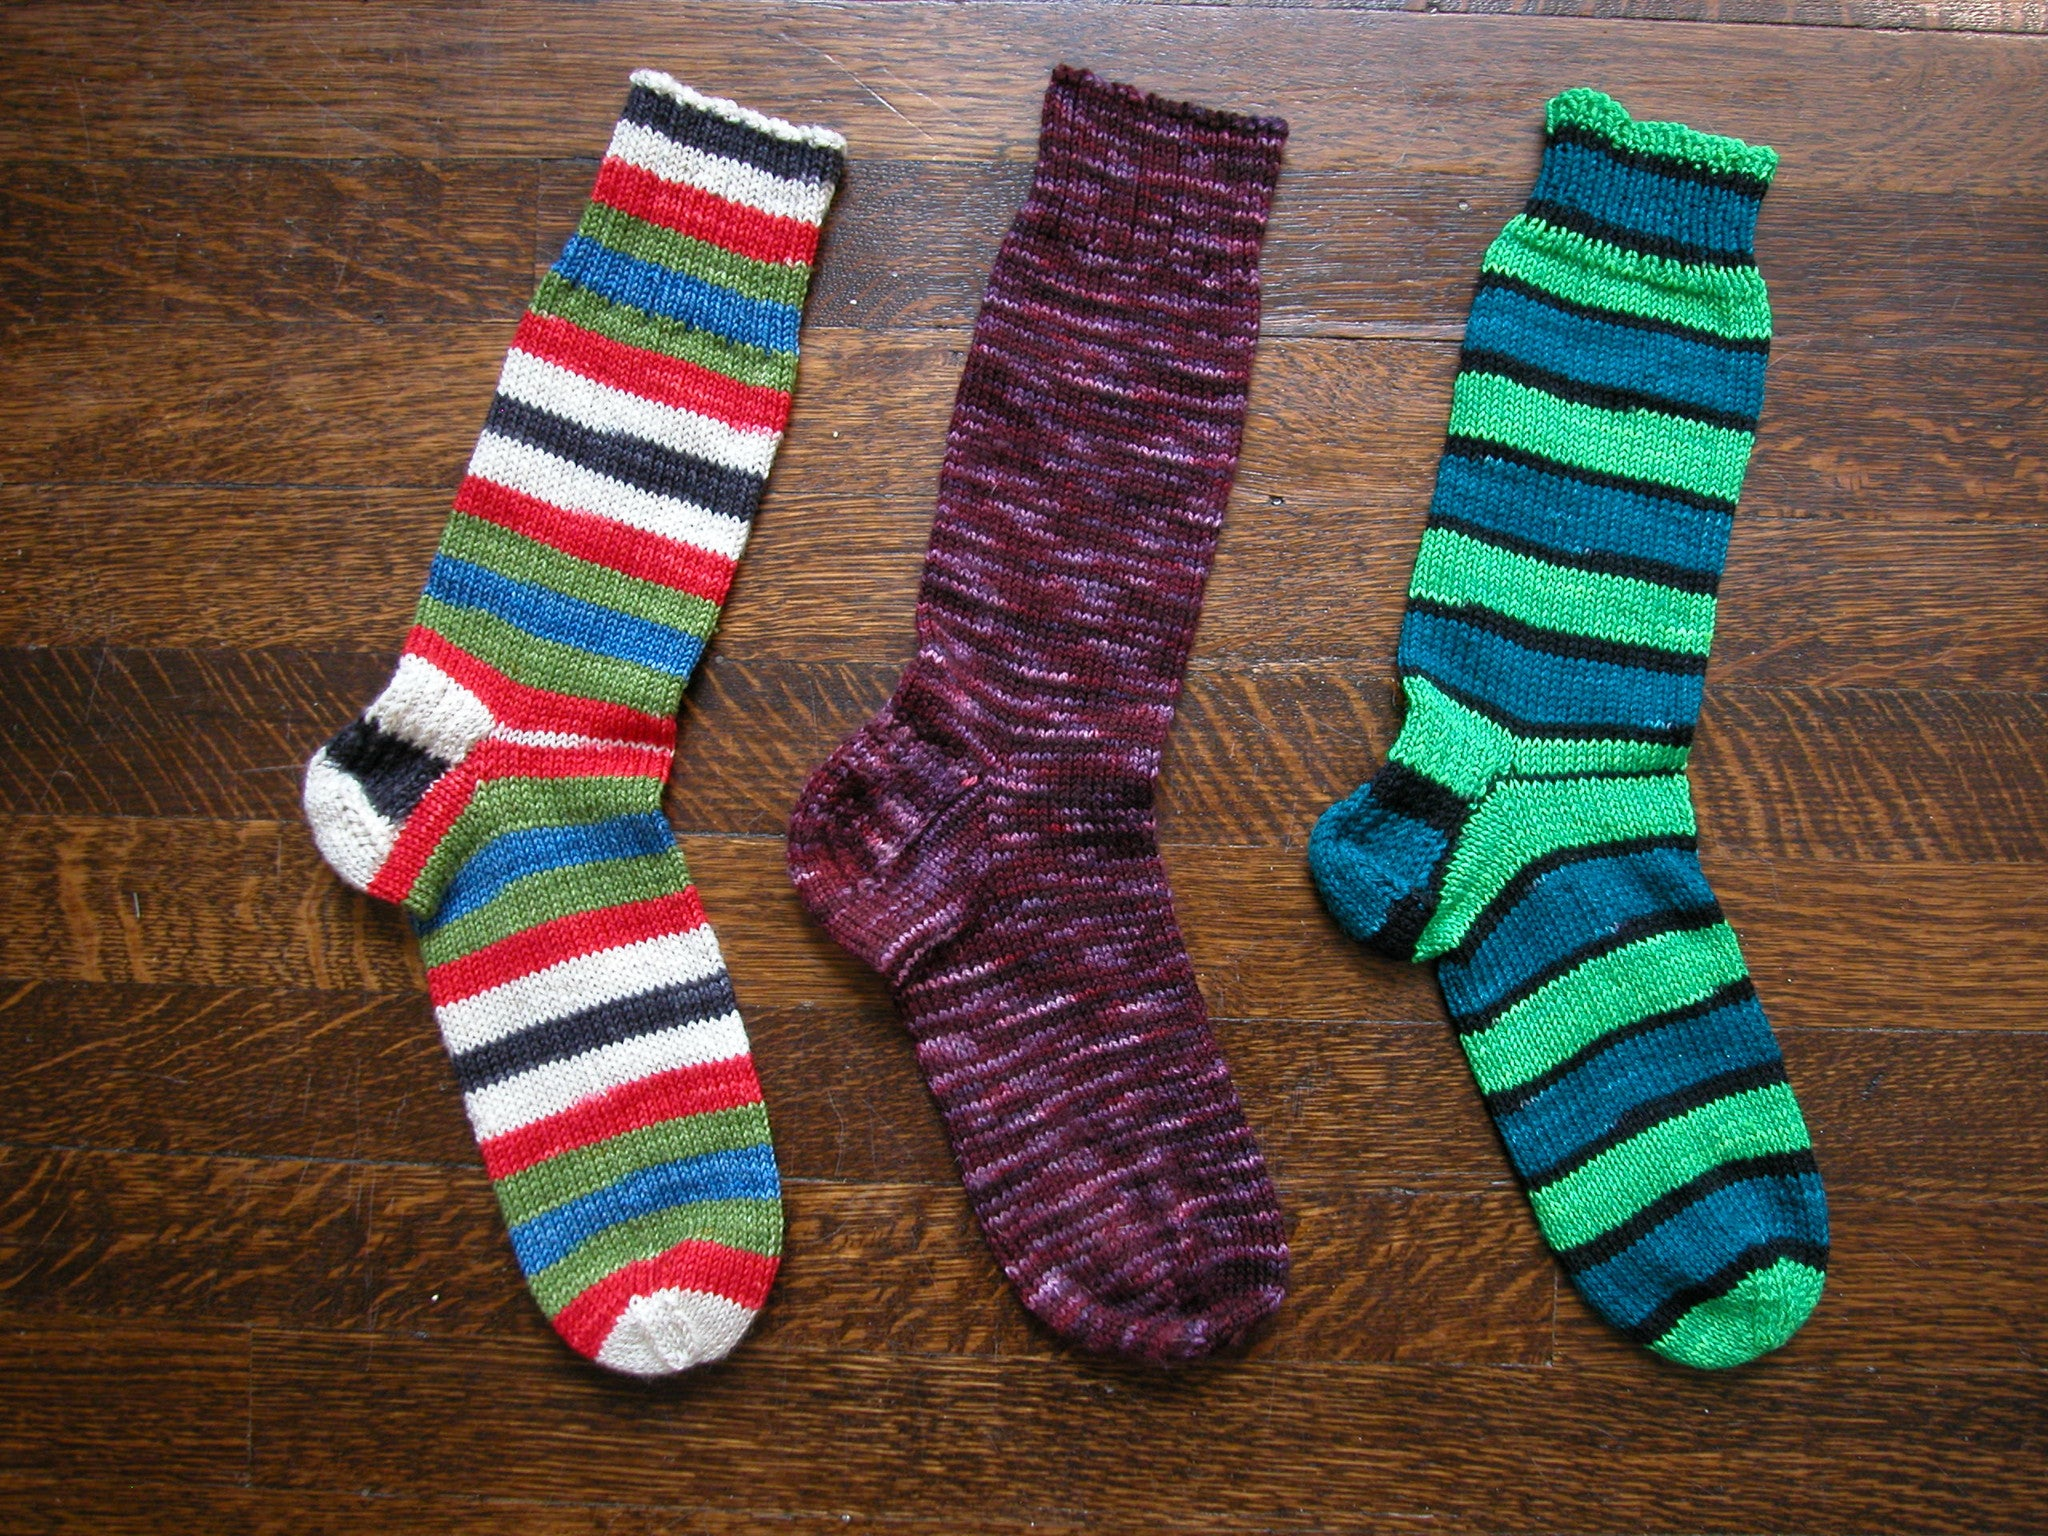 64771bc43e3 First Pair of Socks Class – the knit cafe